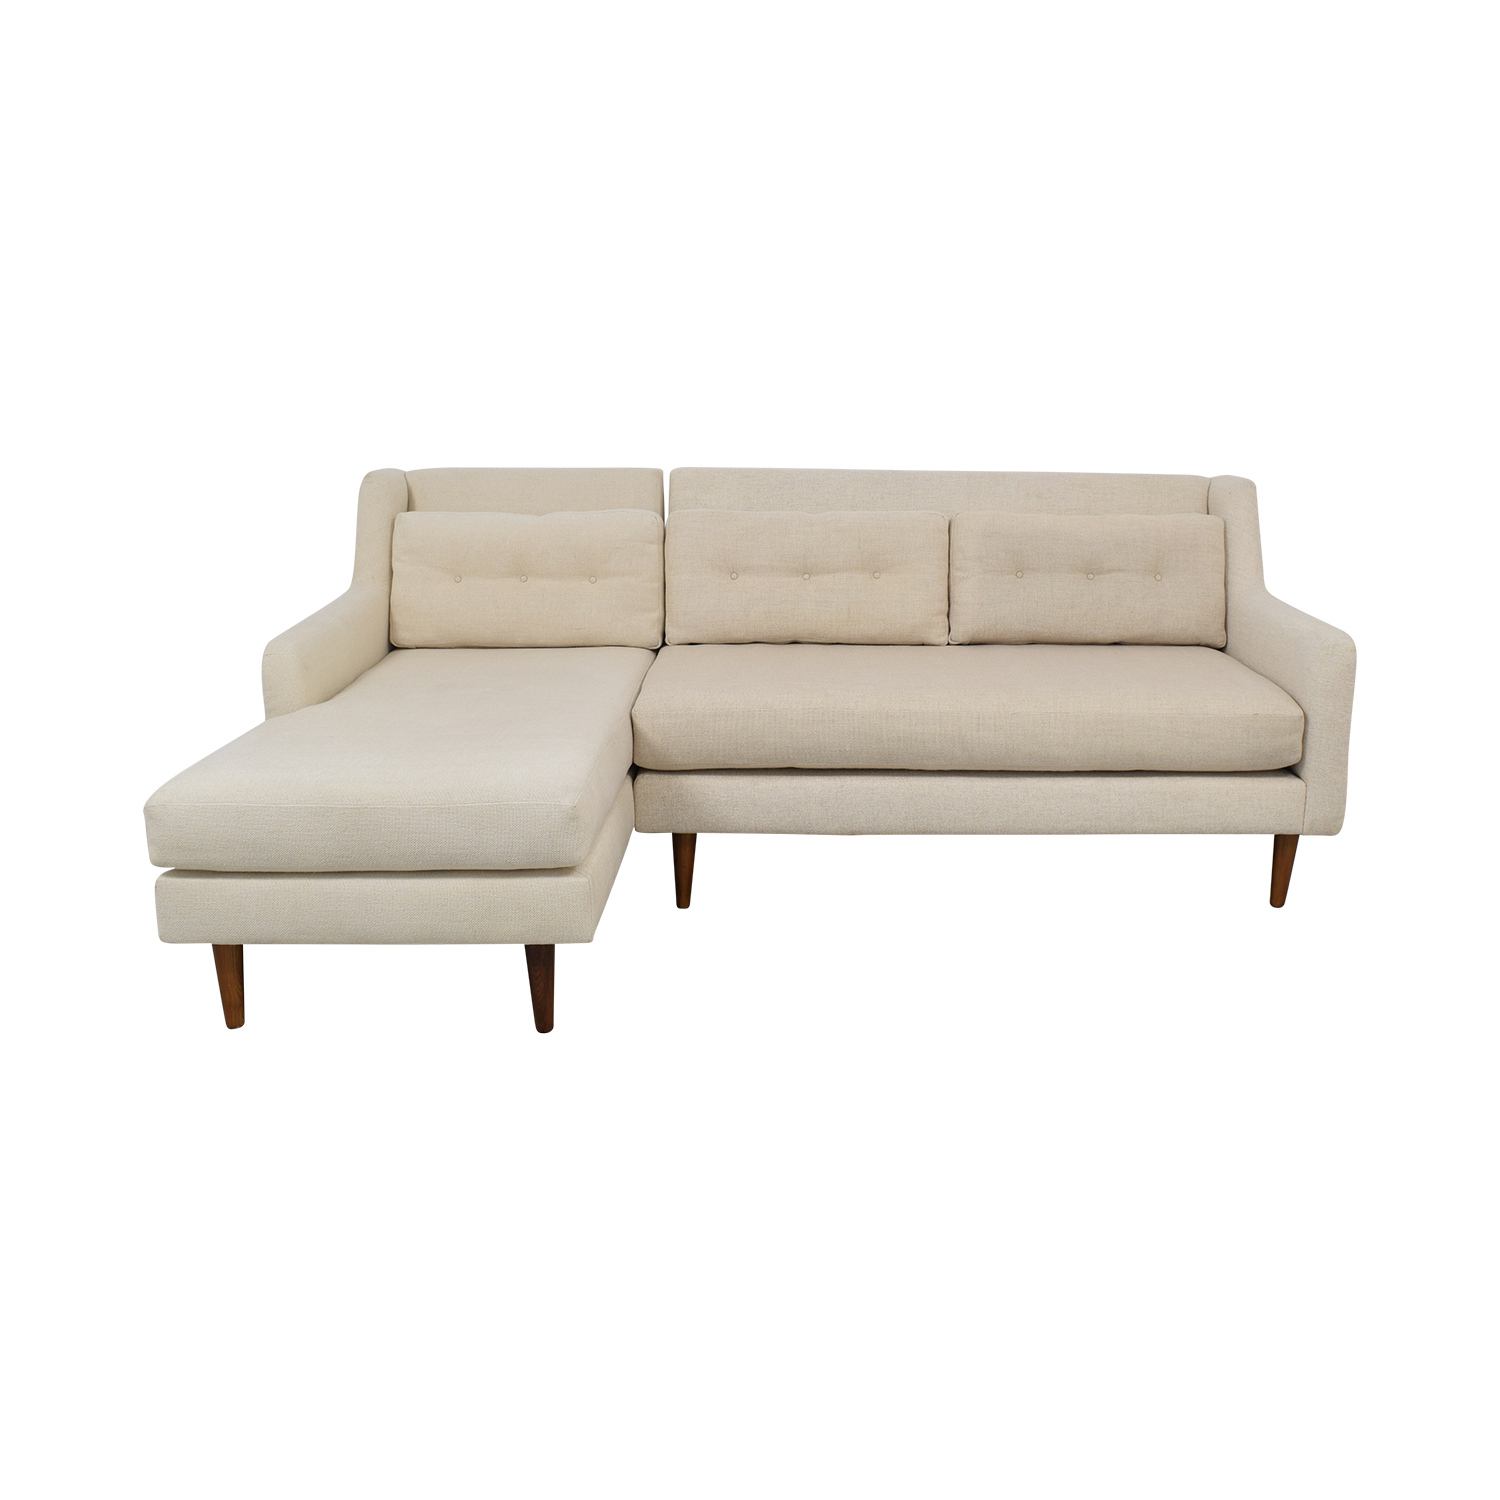 West Elm West Elm Crosby Midcentury Sectional for sale